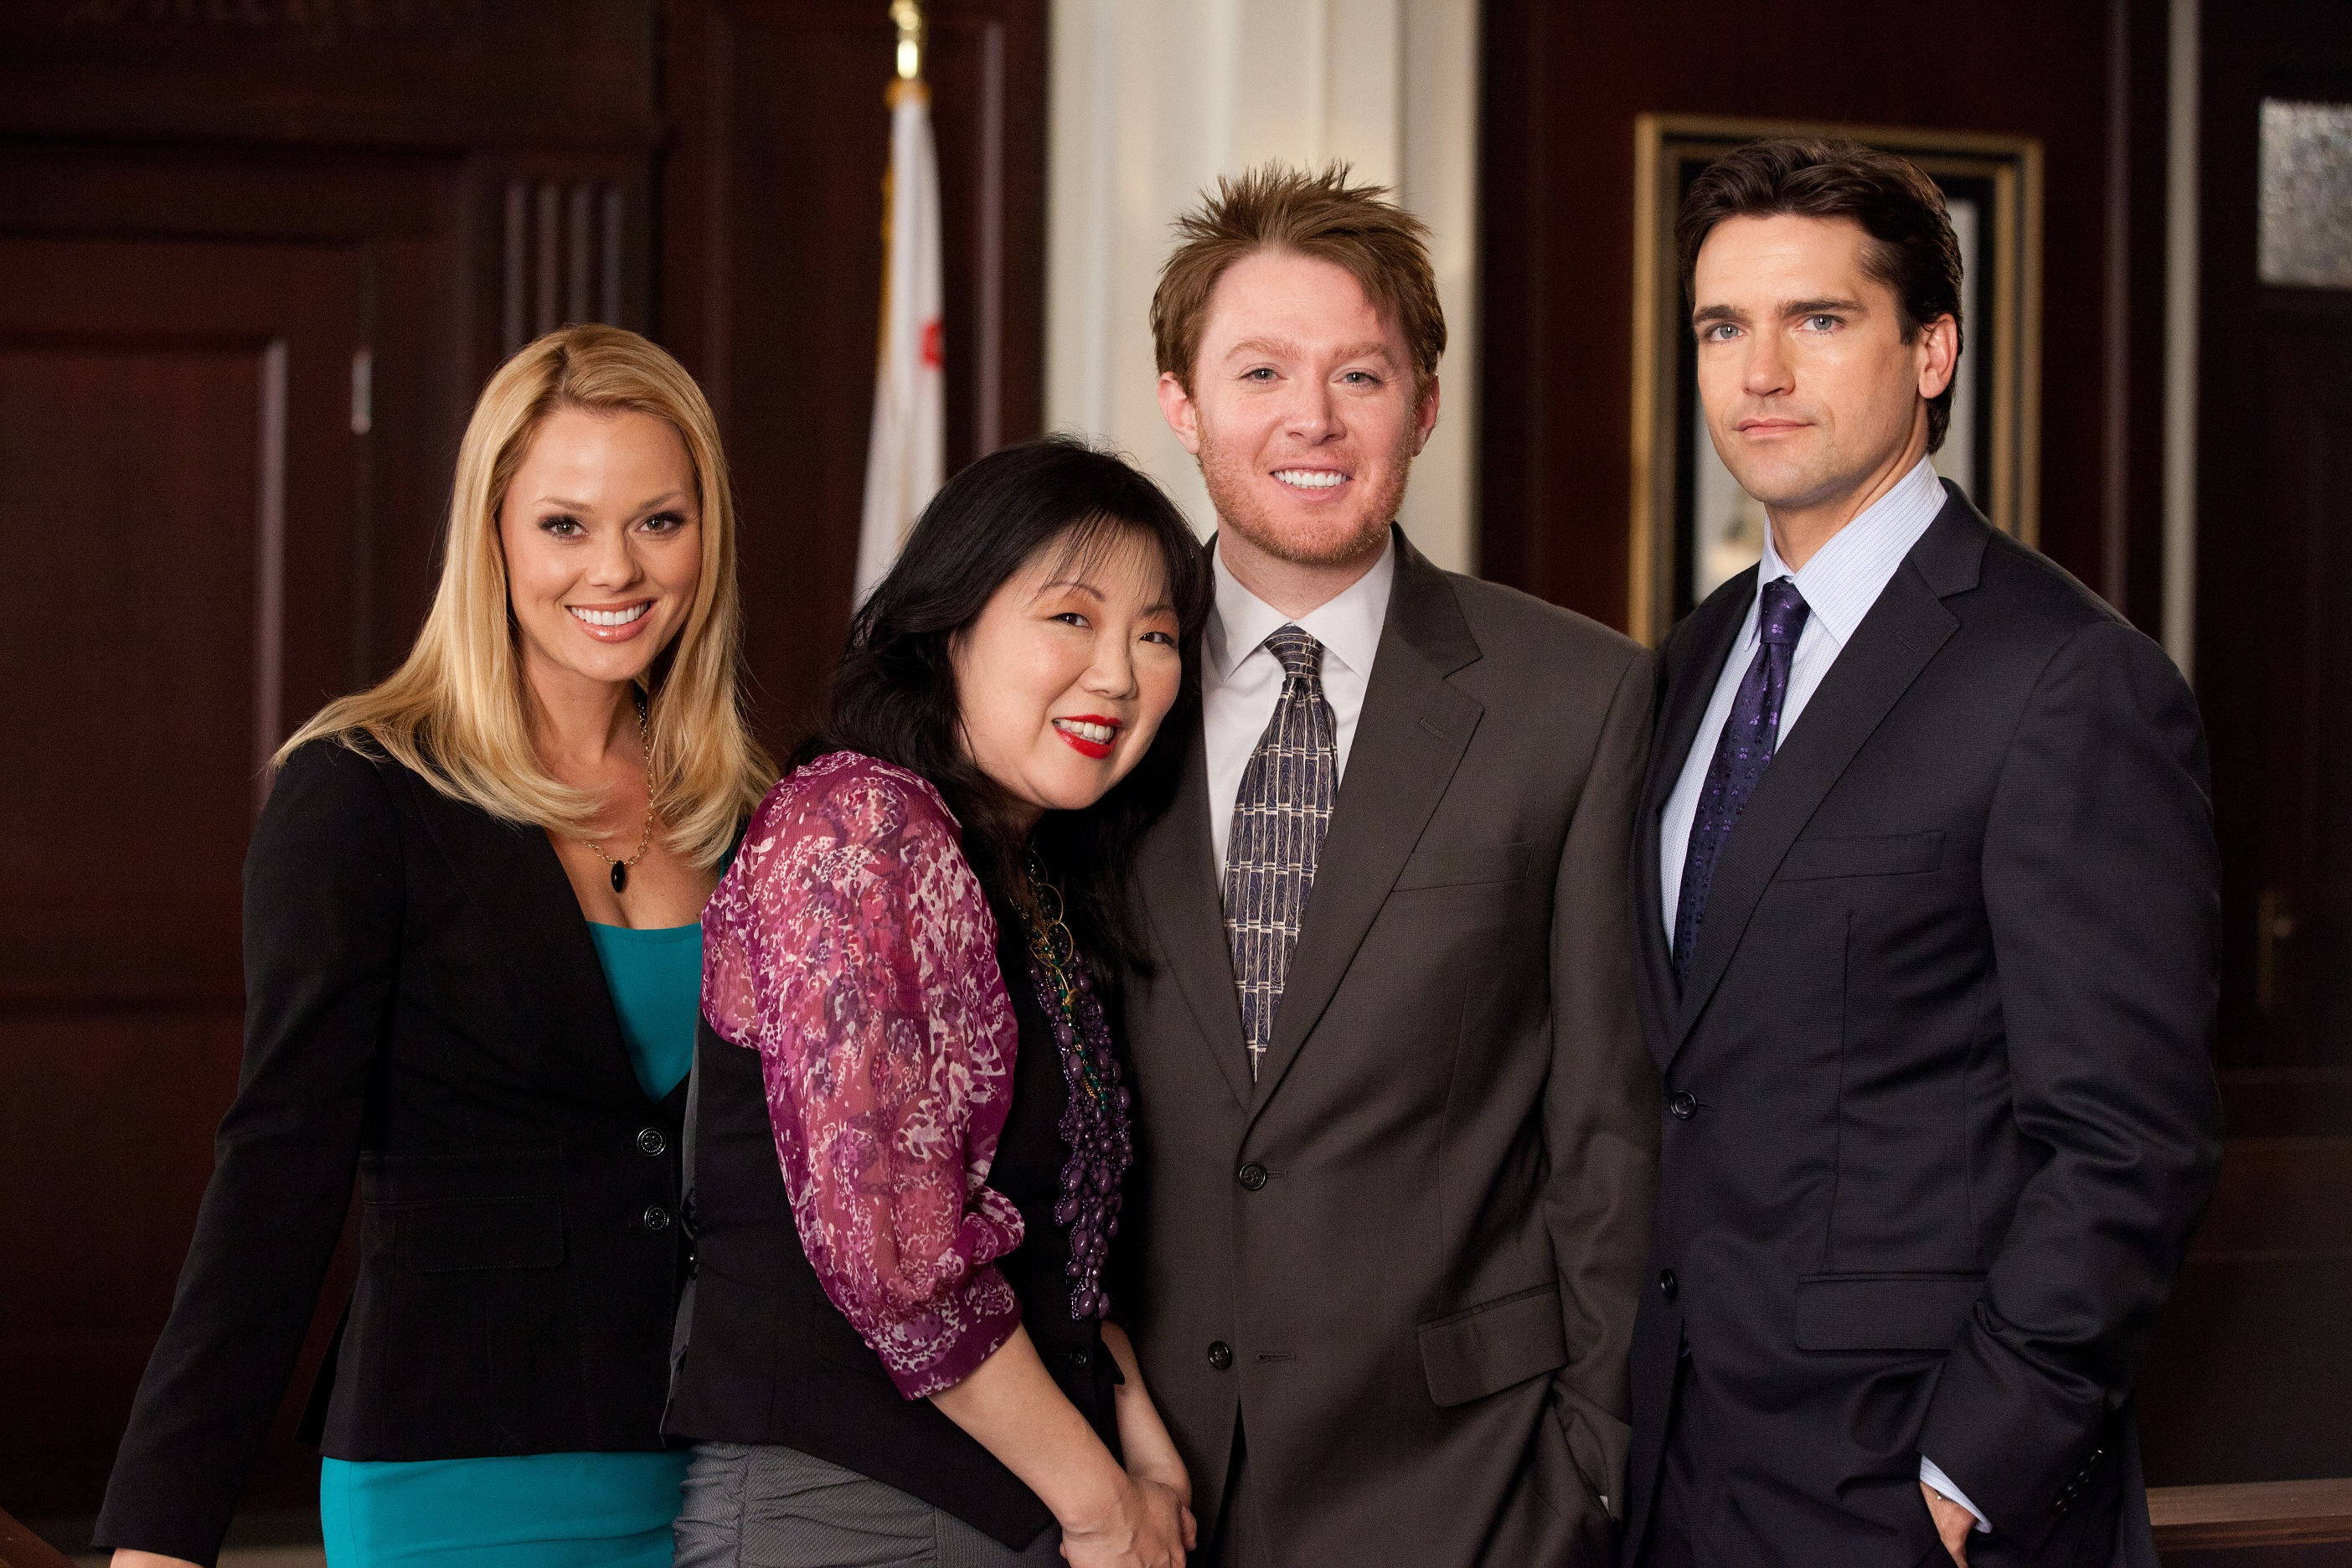 Clay Aiken looks to fans for support of 'Drop Dead Diva' (Exclusive Interview)